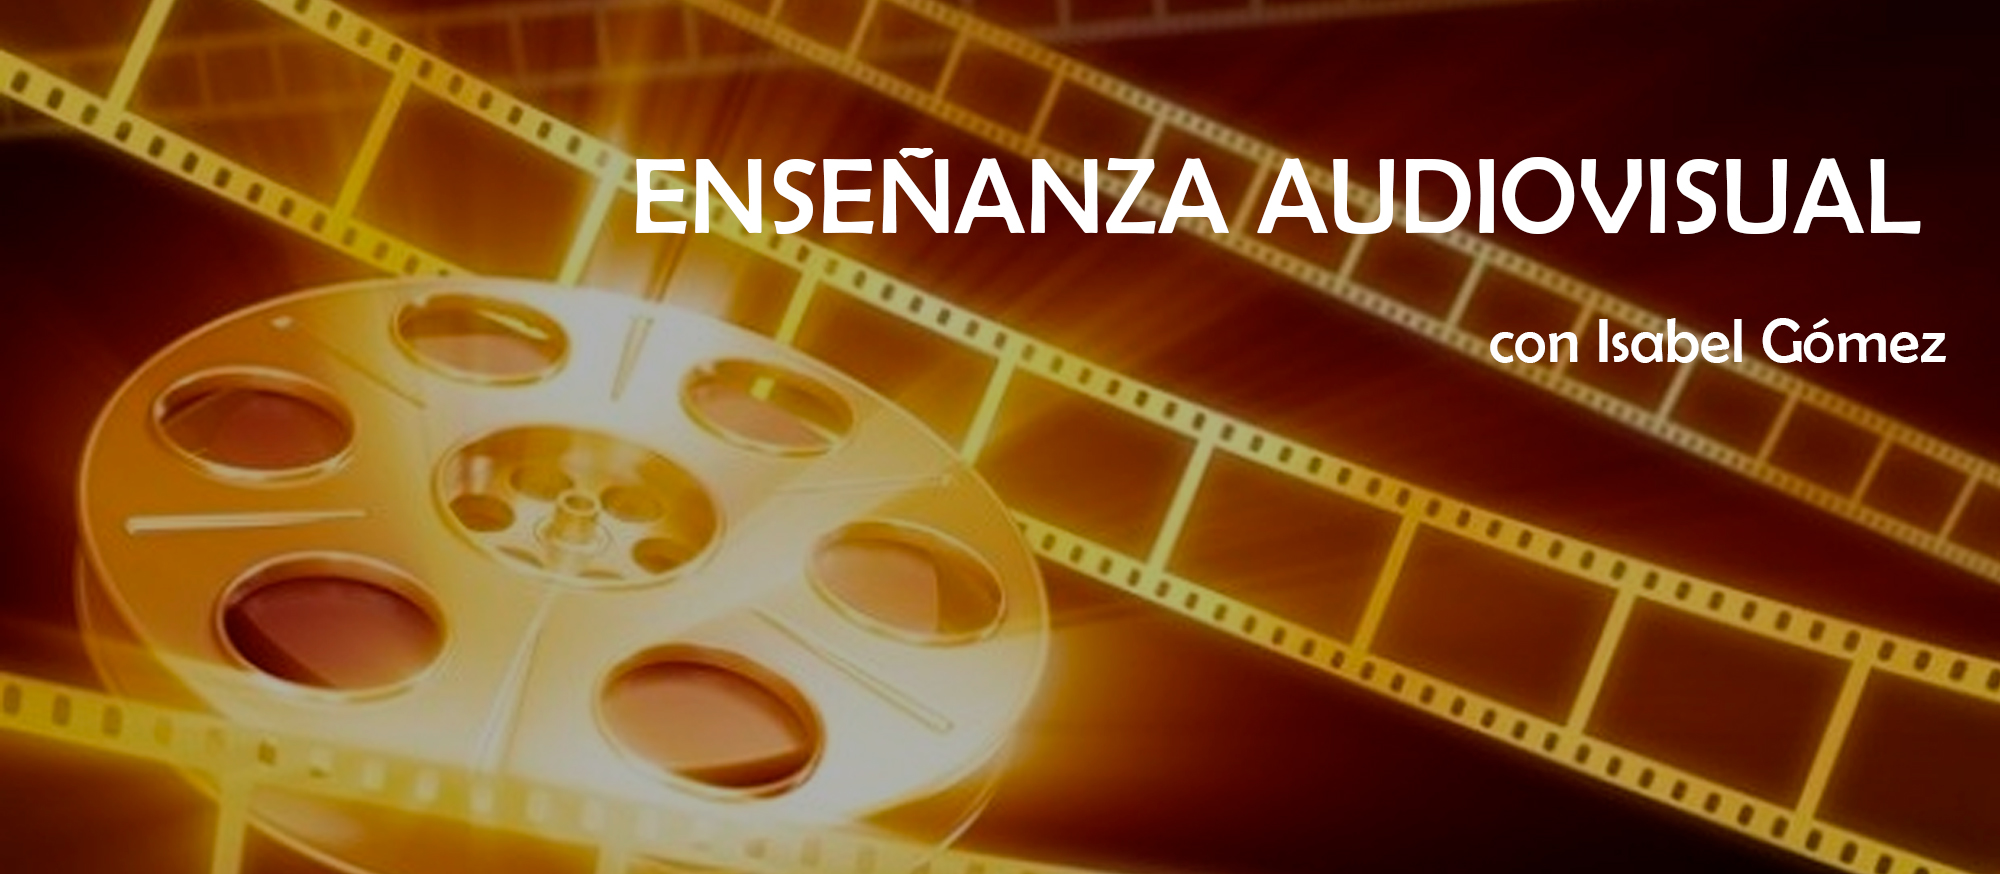 enenanza audiovisula metafisica madrid